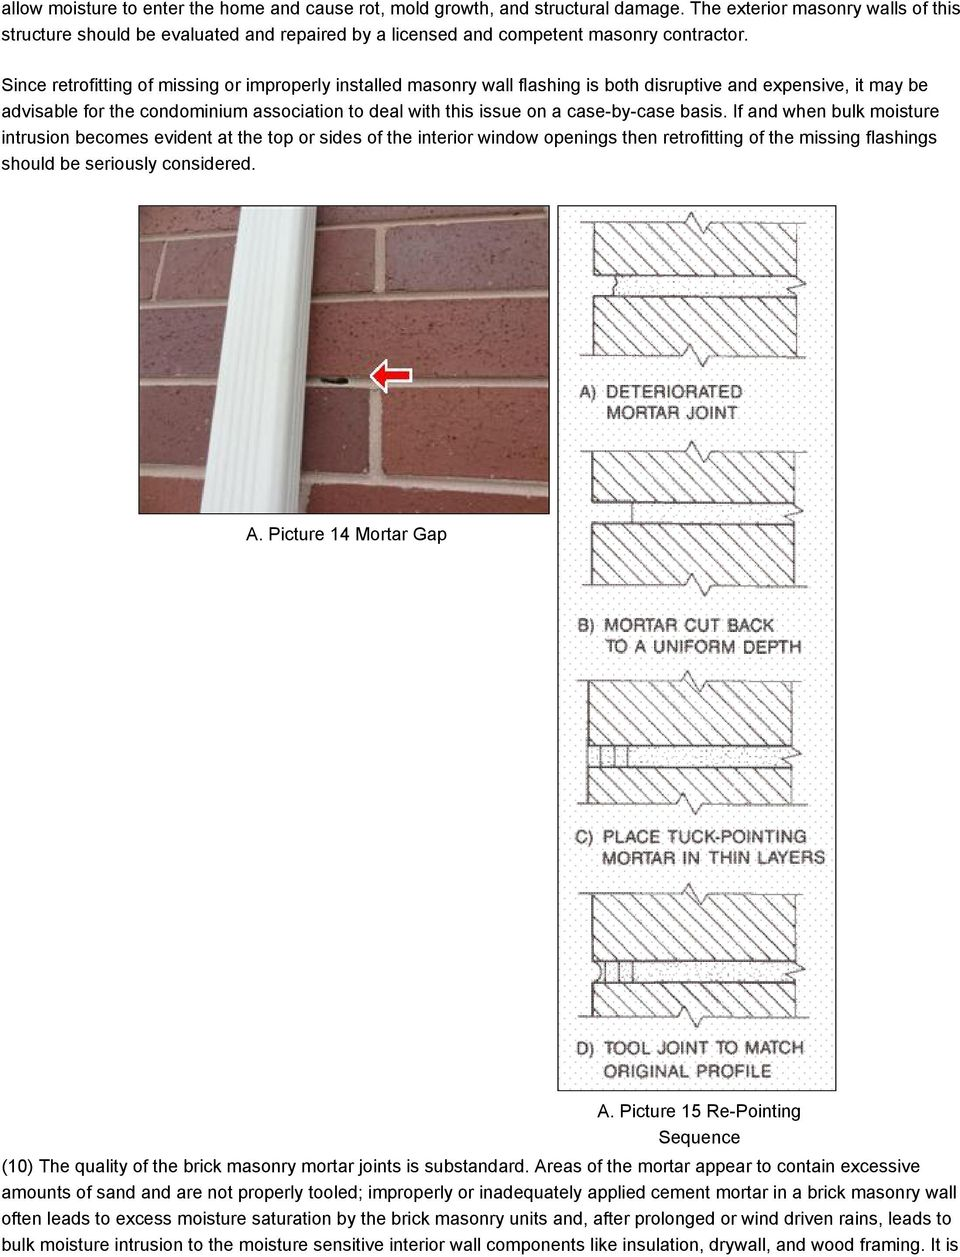 Since retrofitting of missing or improperly installed masonry wall flashing is both disruptive and expensive, it may be advisable for the condominium association to deal with this issue on a